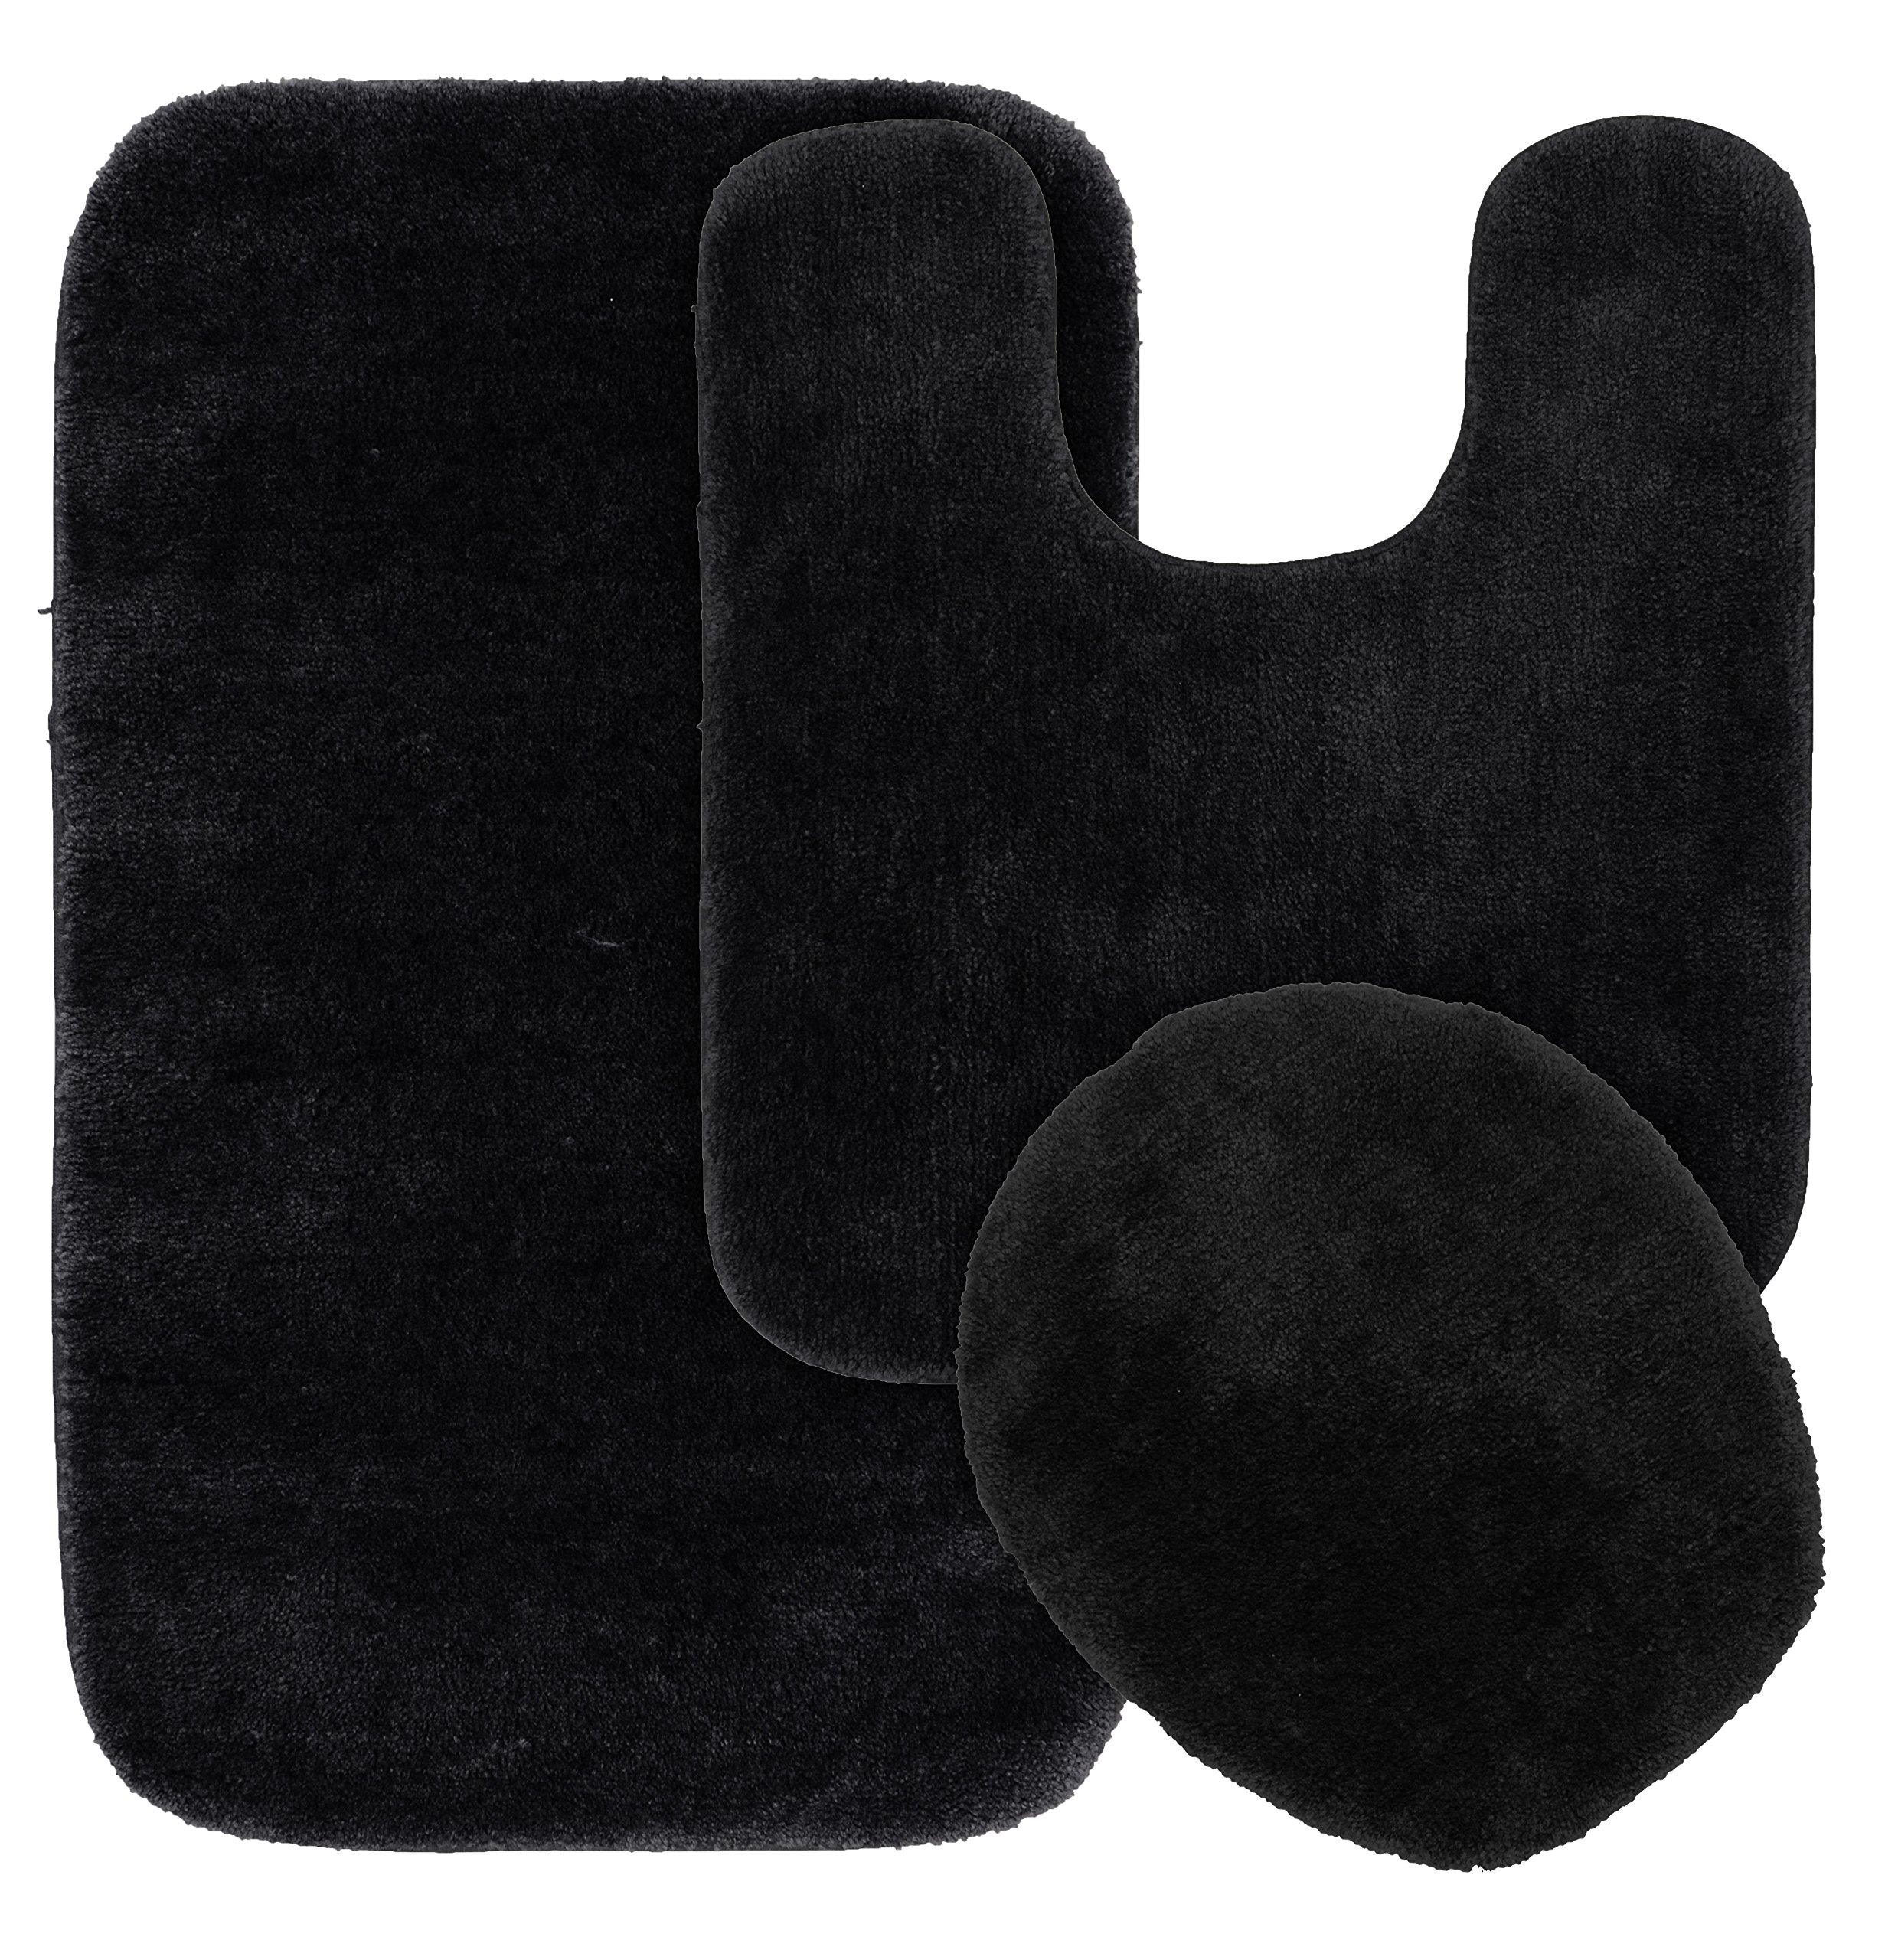 Garland Rug BA010W3P02J9 Traditional Bath Rug Set, 3-Piece Set, Black